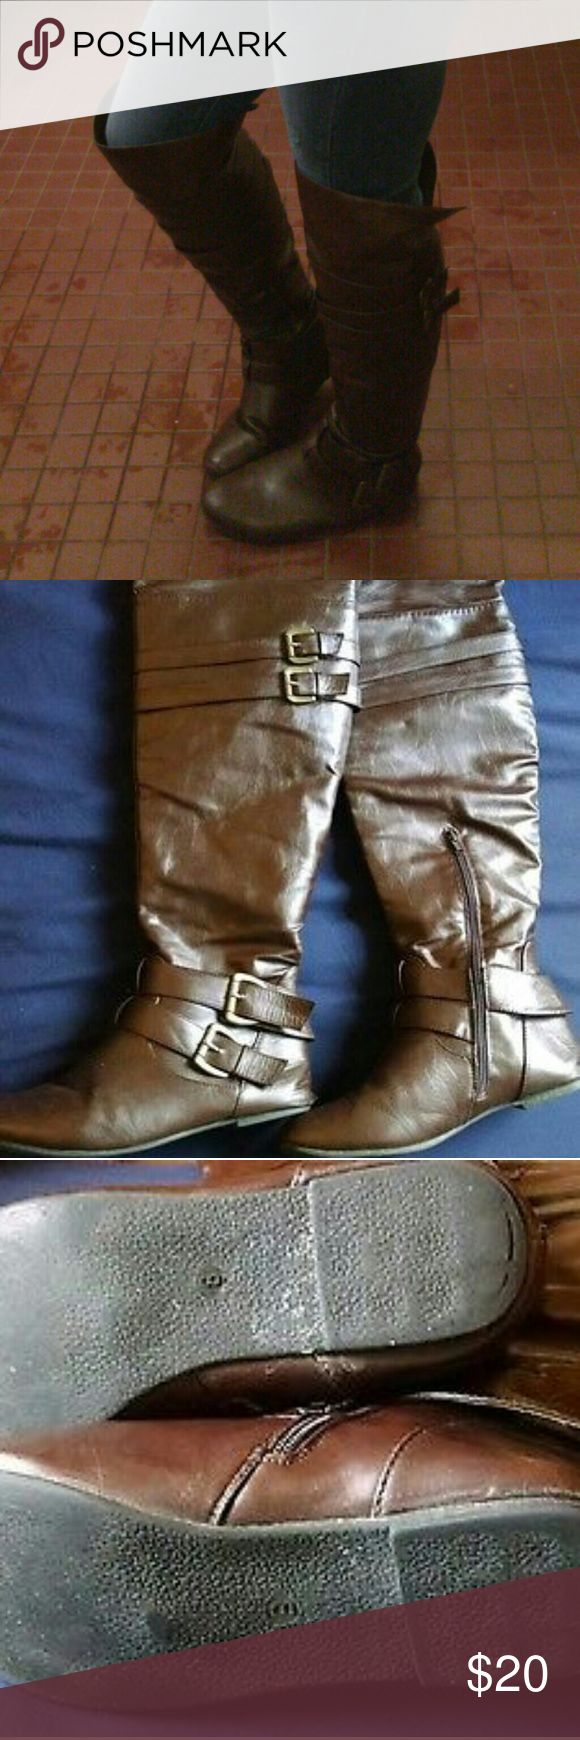 West Blvd over the knee Brown Boots Size 8 In good preowned condition, so so cute. No tears or rips but they are a little worn down on the bottom. They are still so cute, accurate size 8. Dark brown, zip up the side and buckles for decoration. West Blvd Shoes Over the Knee Boots